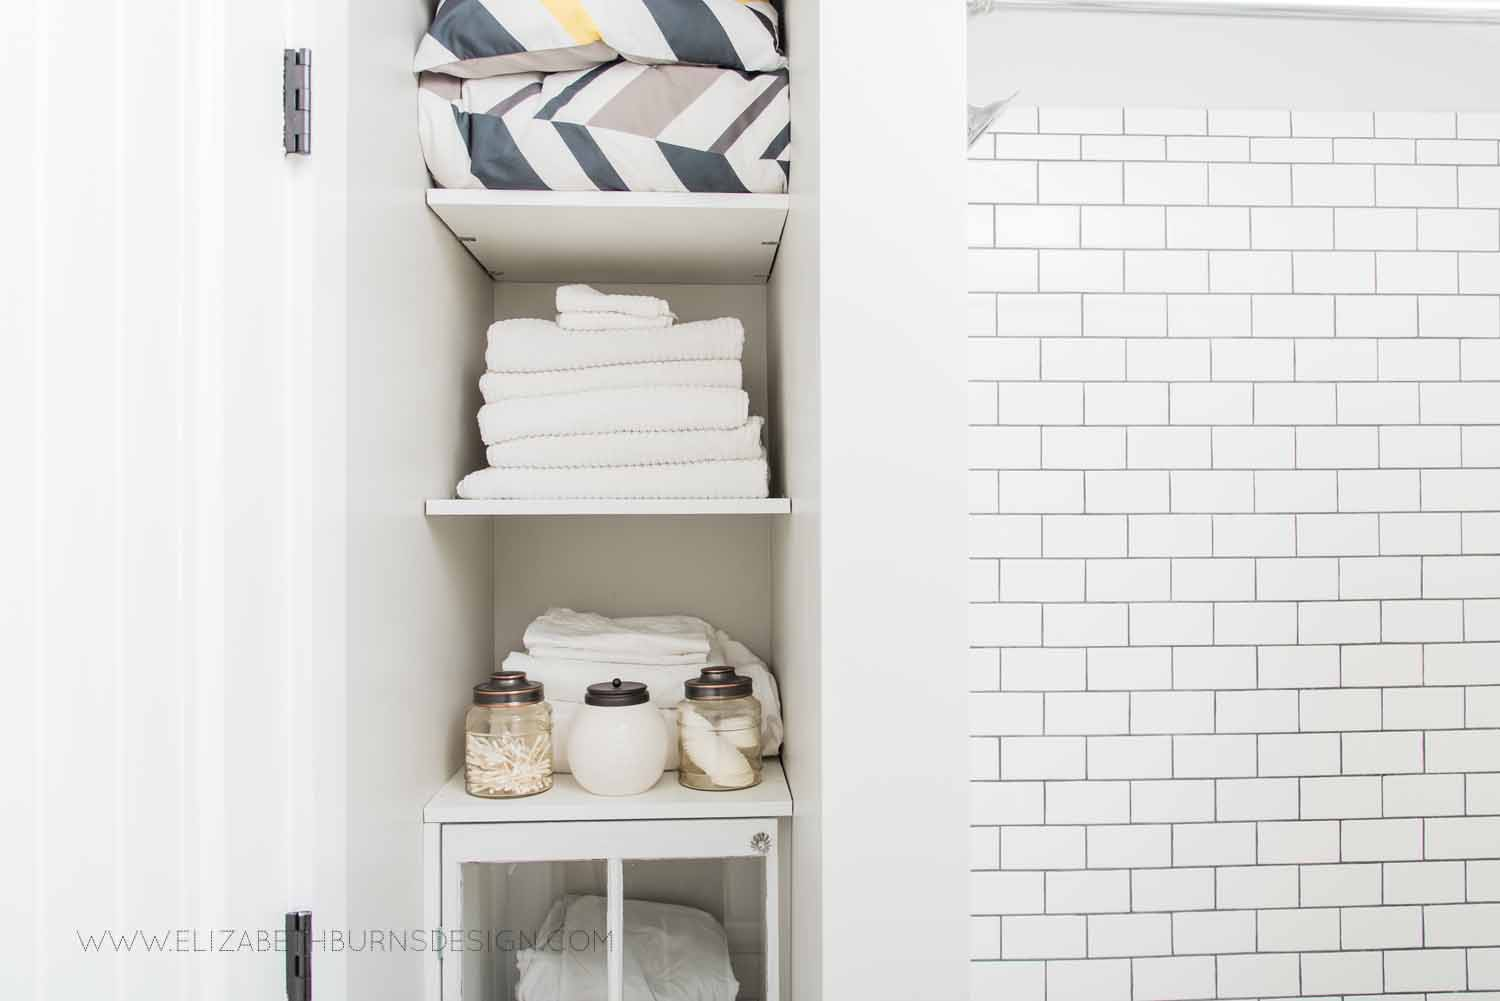 Elizabeth Burns Design Raleigh Interior Designer  Farmhouse Fixer Upper Cottage Renovation, Sherwin Williams Agreeable Gray SW 7029 Small Bathroom Storage Ideas on a Budget (2).jpg